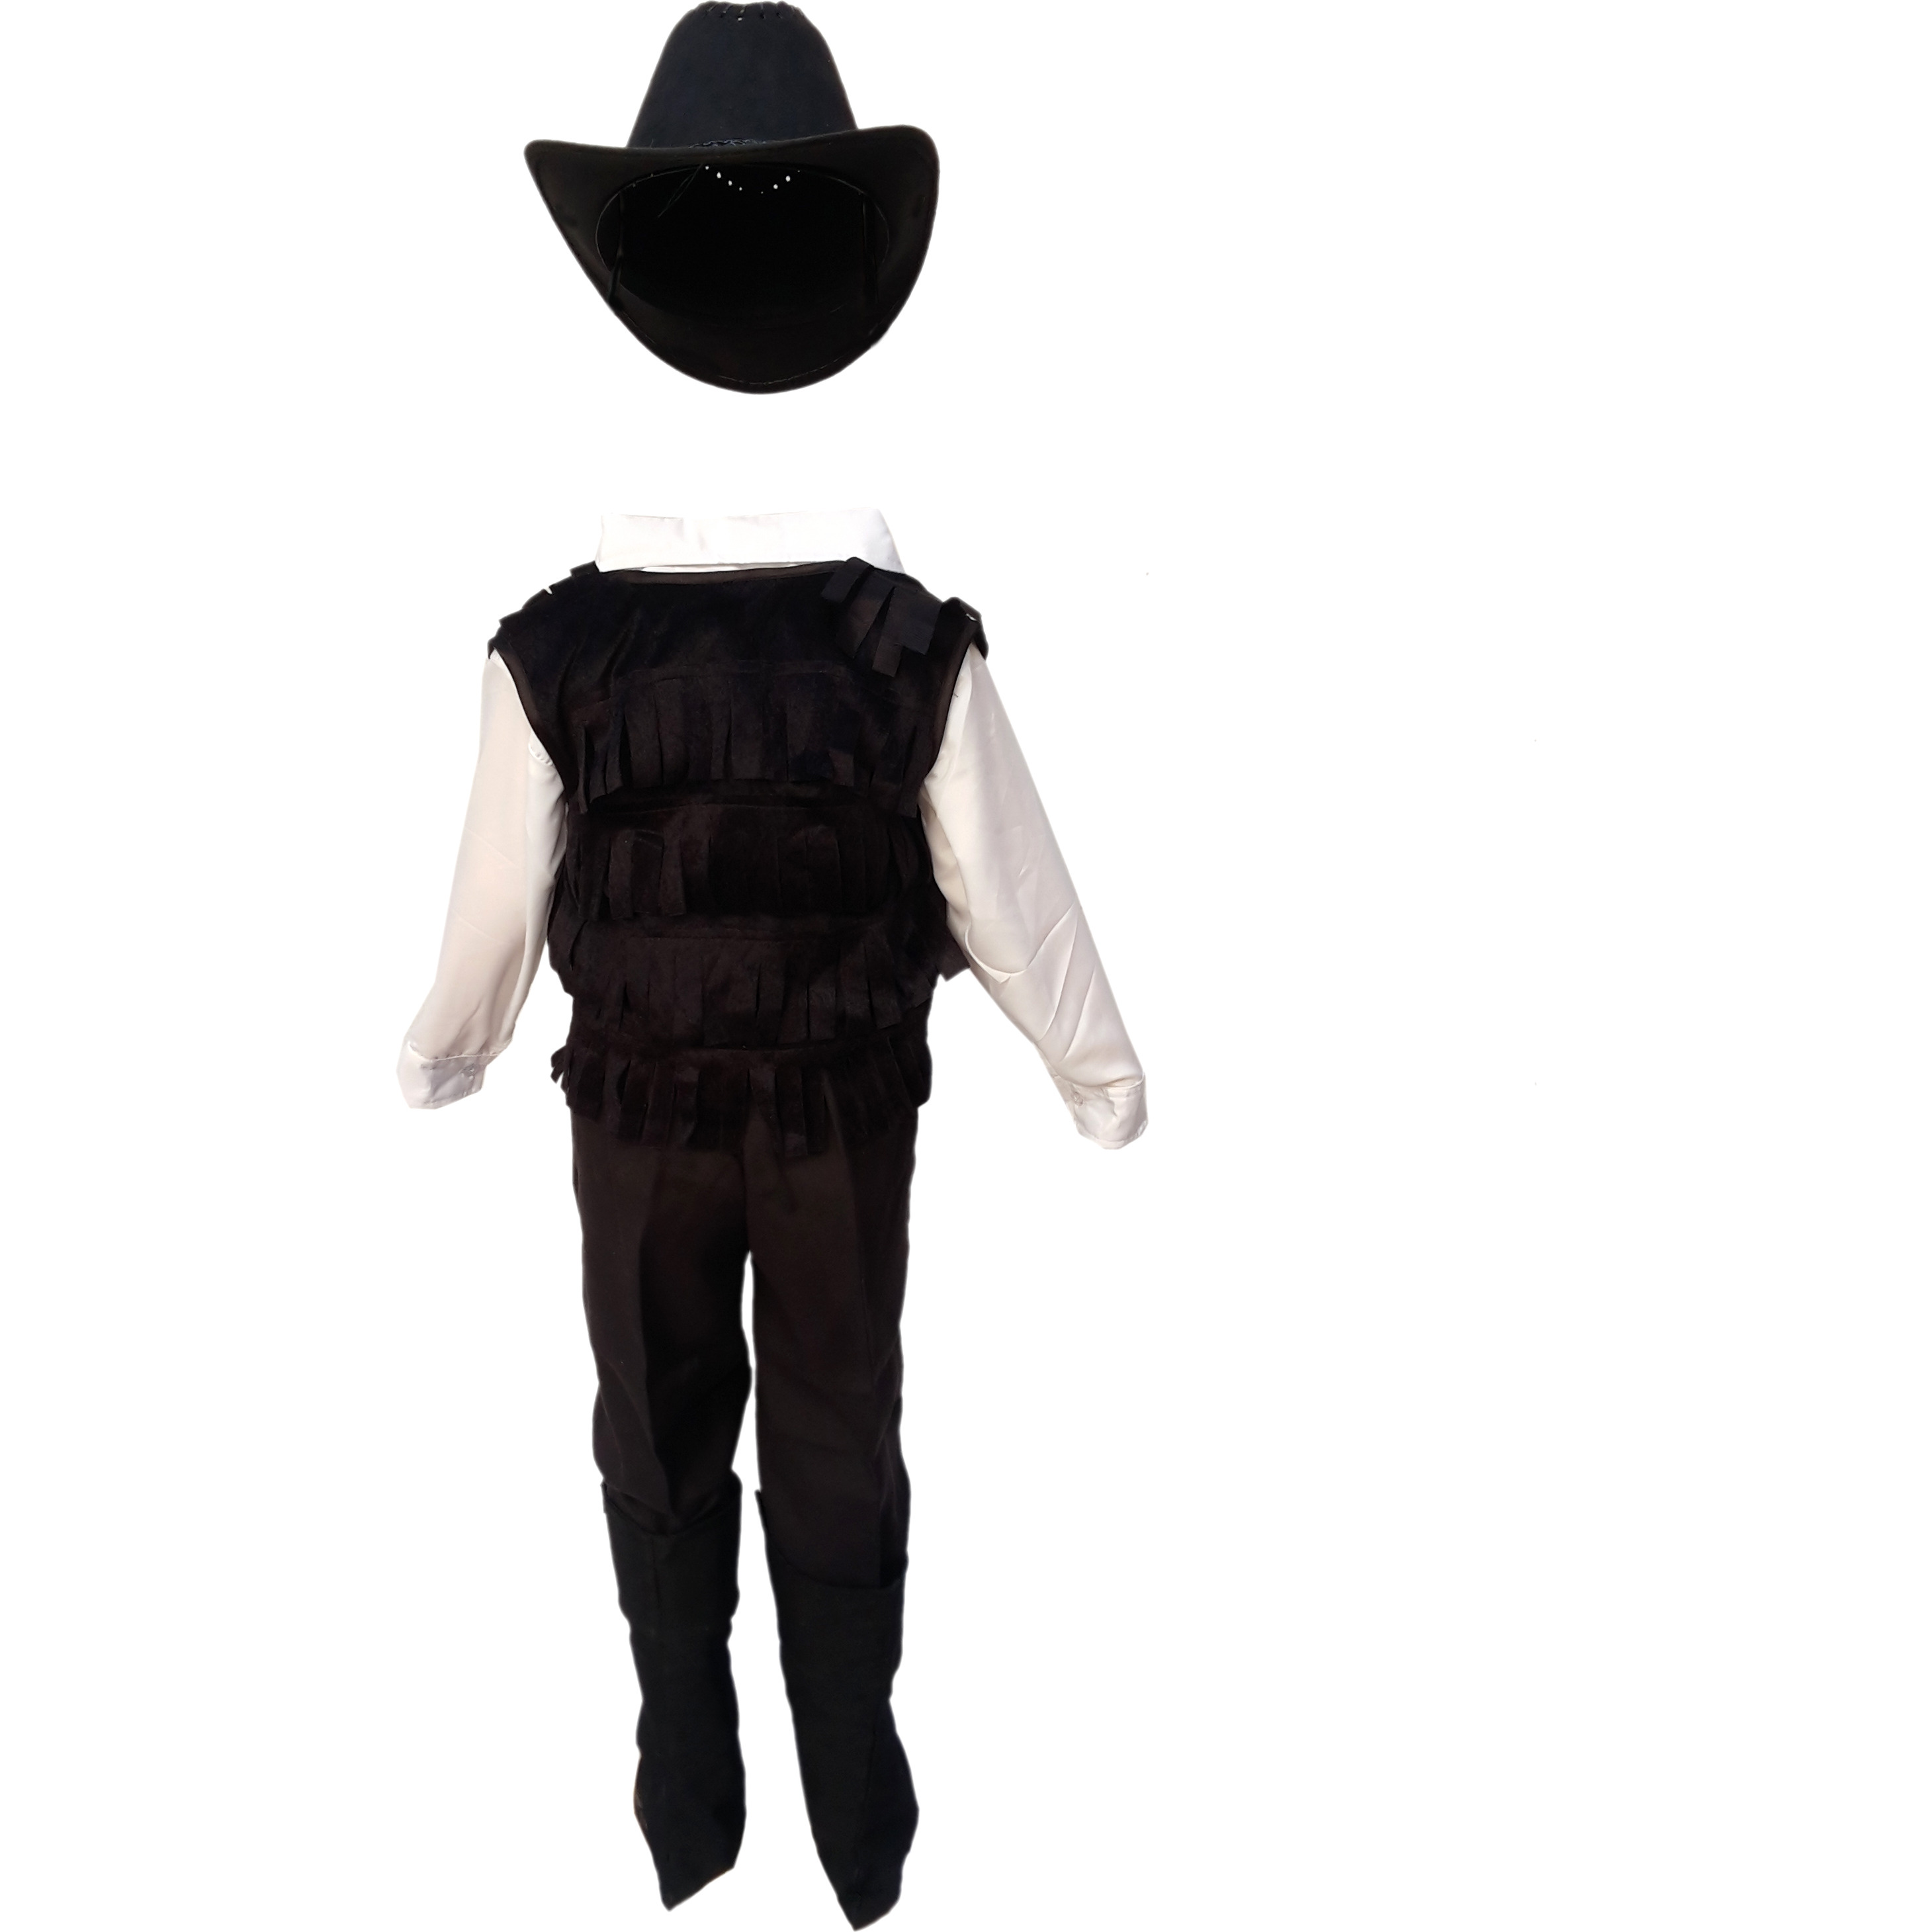 KFD Cow Boy fancy dress for kids,Horse Riding Costume for Annual function/Theme Party/Competition/Stage Shows/Birthday Party Dress